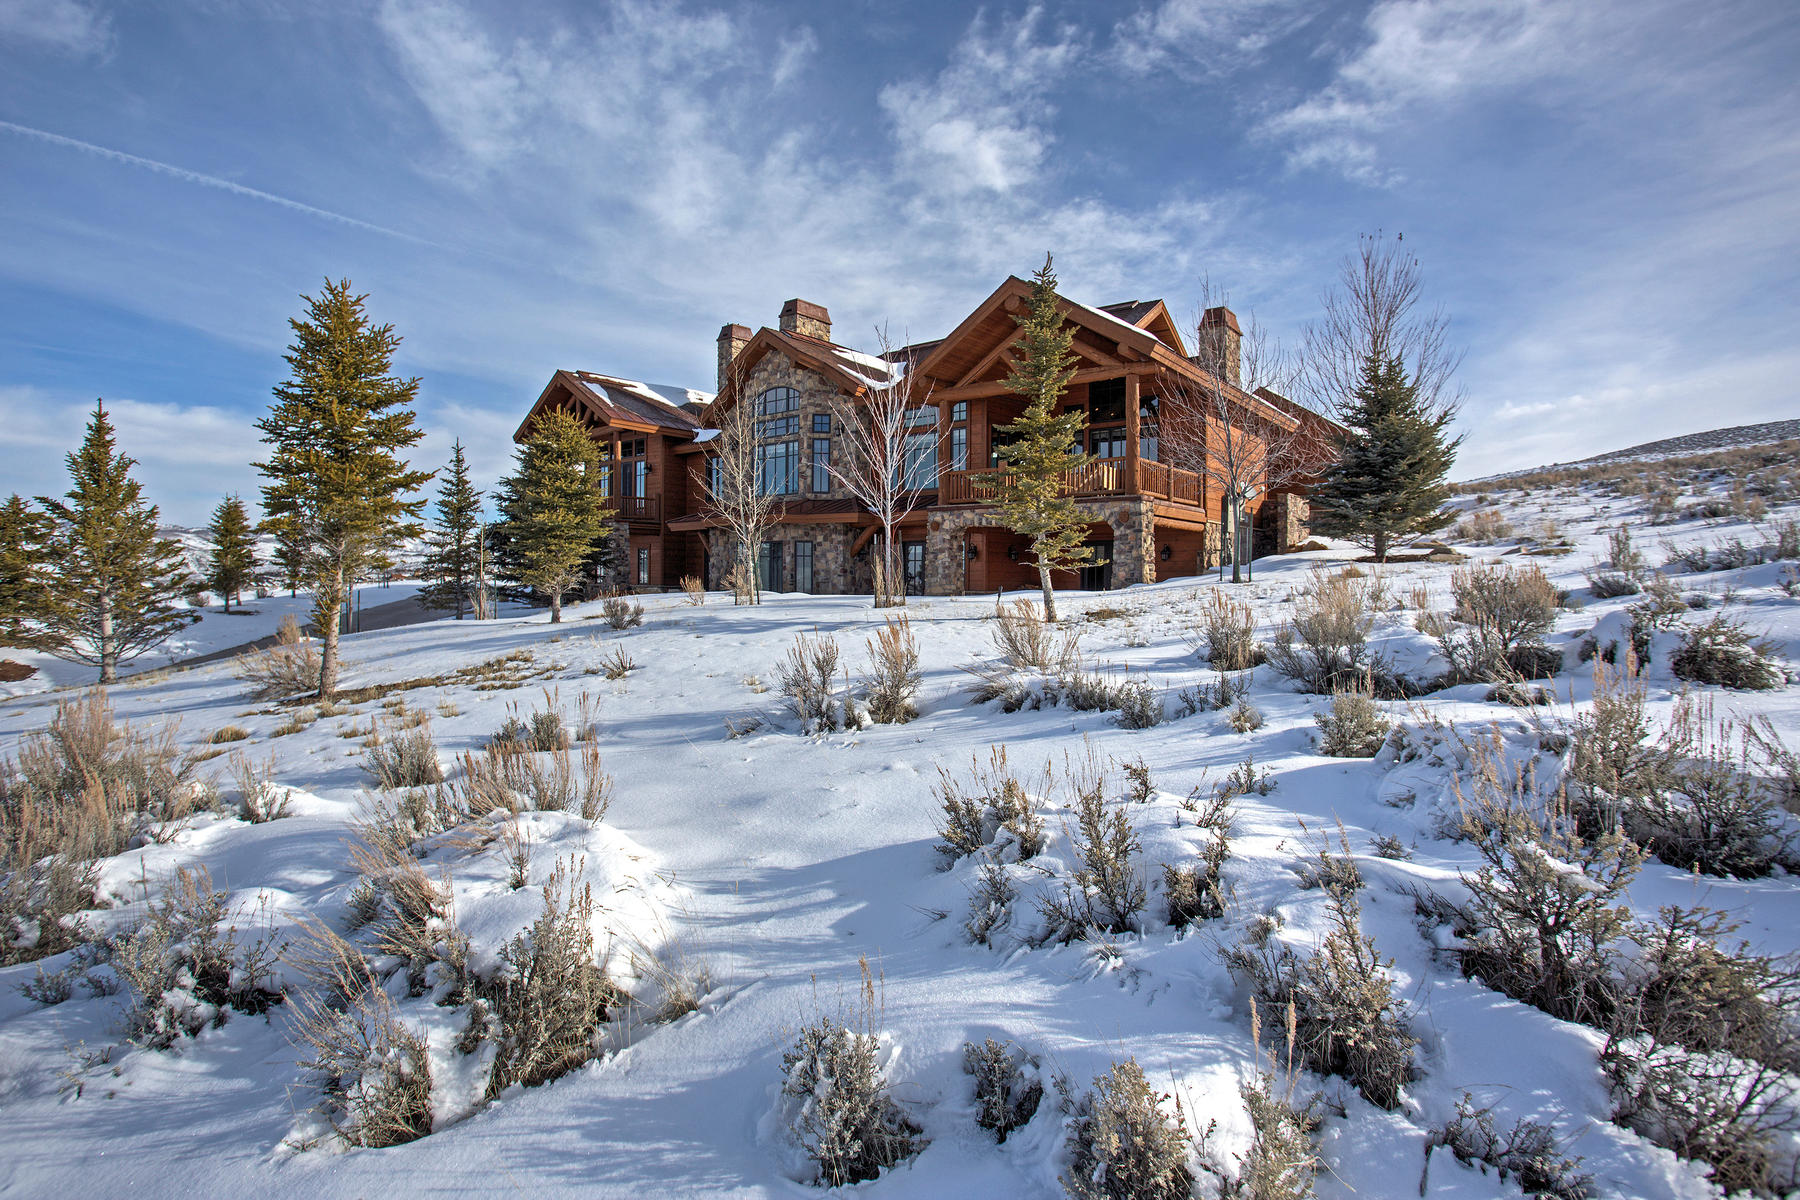 Maison unifamiliale pour l Vente à Fabulous Large Home in Promontory with Beautiful Views 6262 Dakota Trail Lot #32 Park City, Utah, 84098 États-Unis